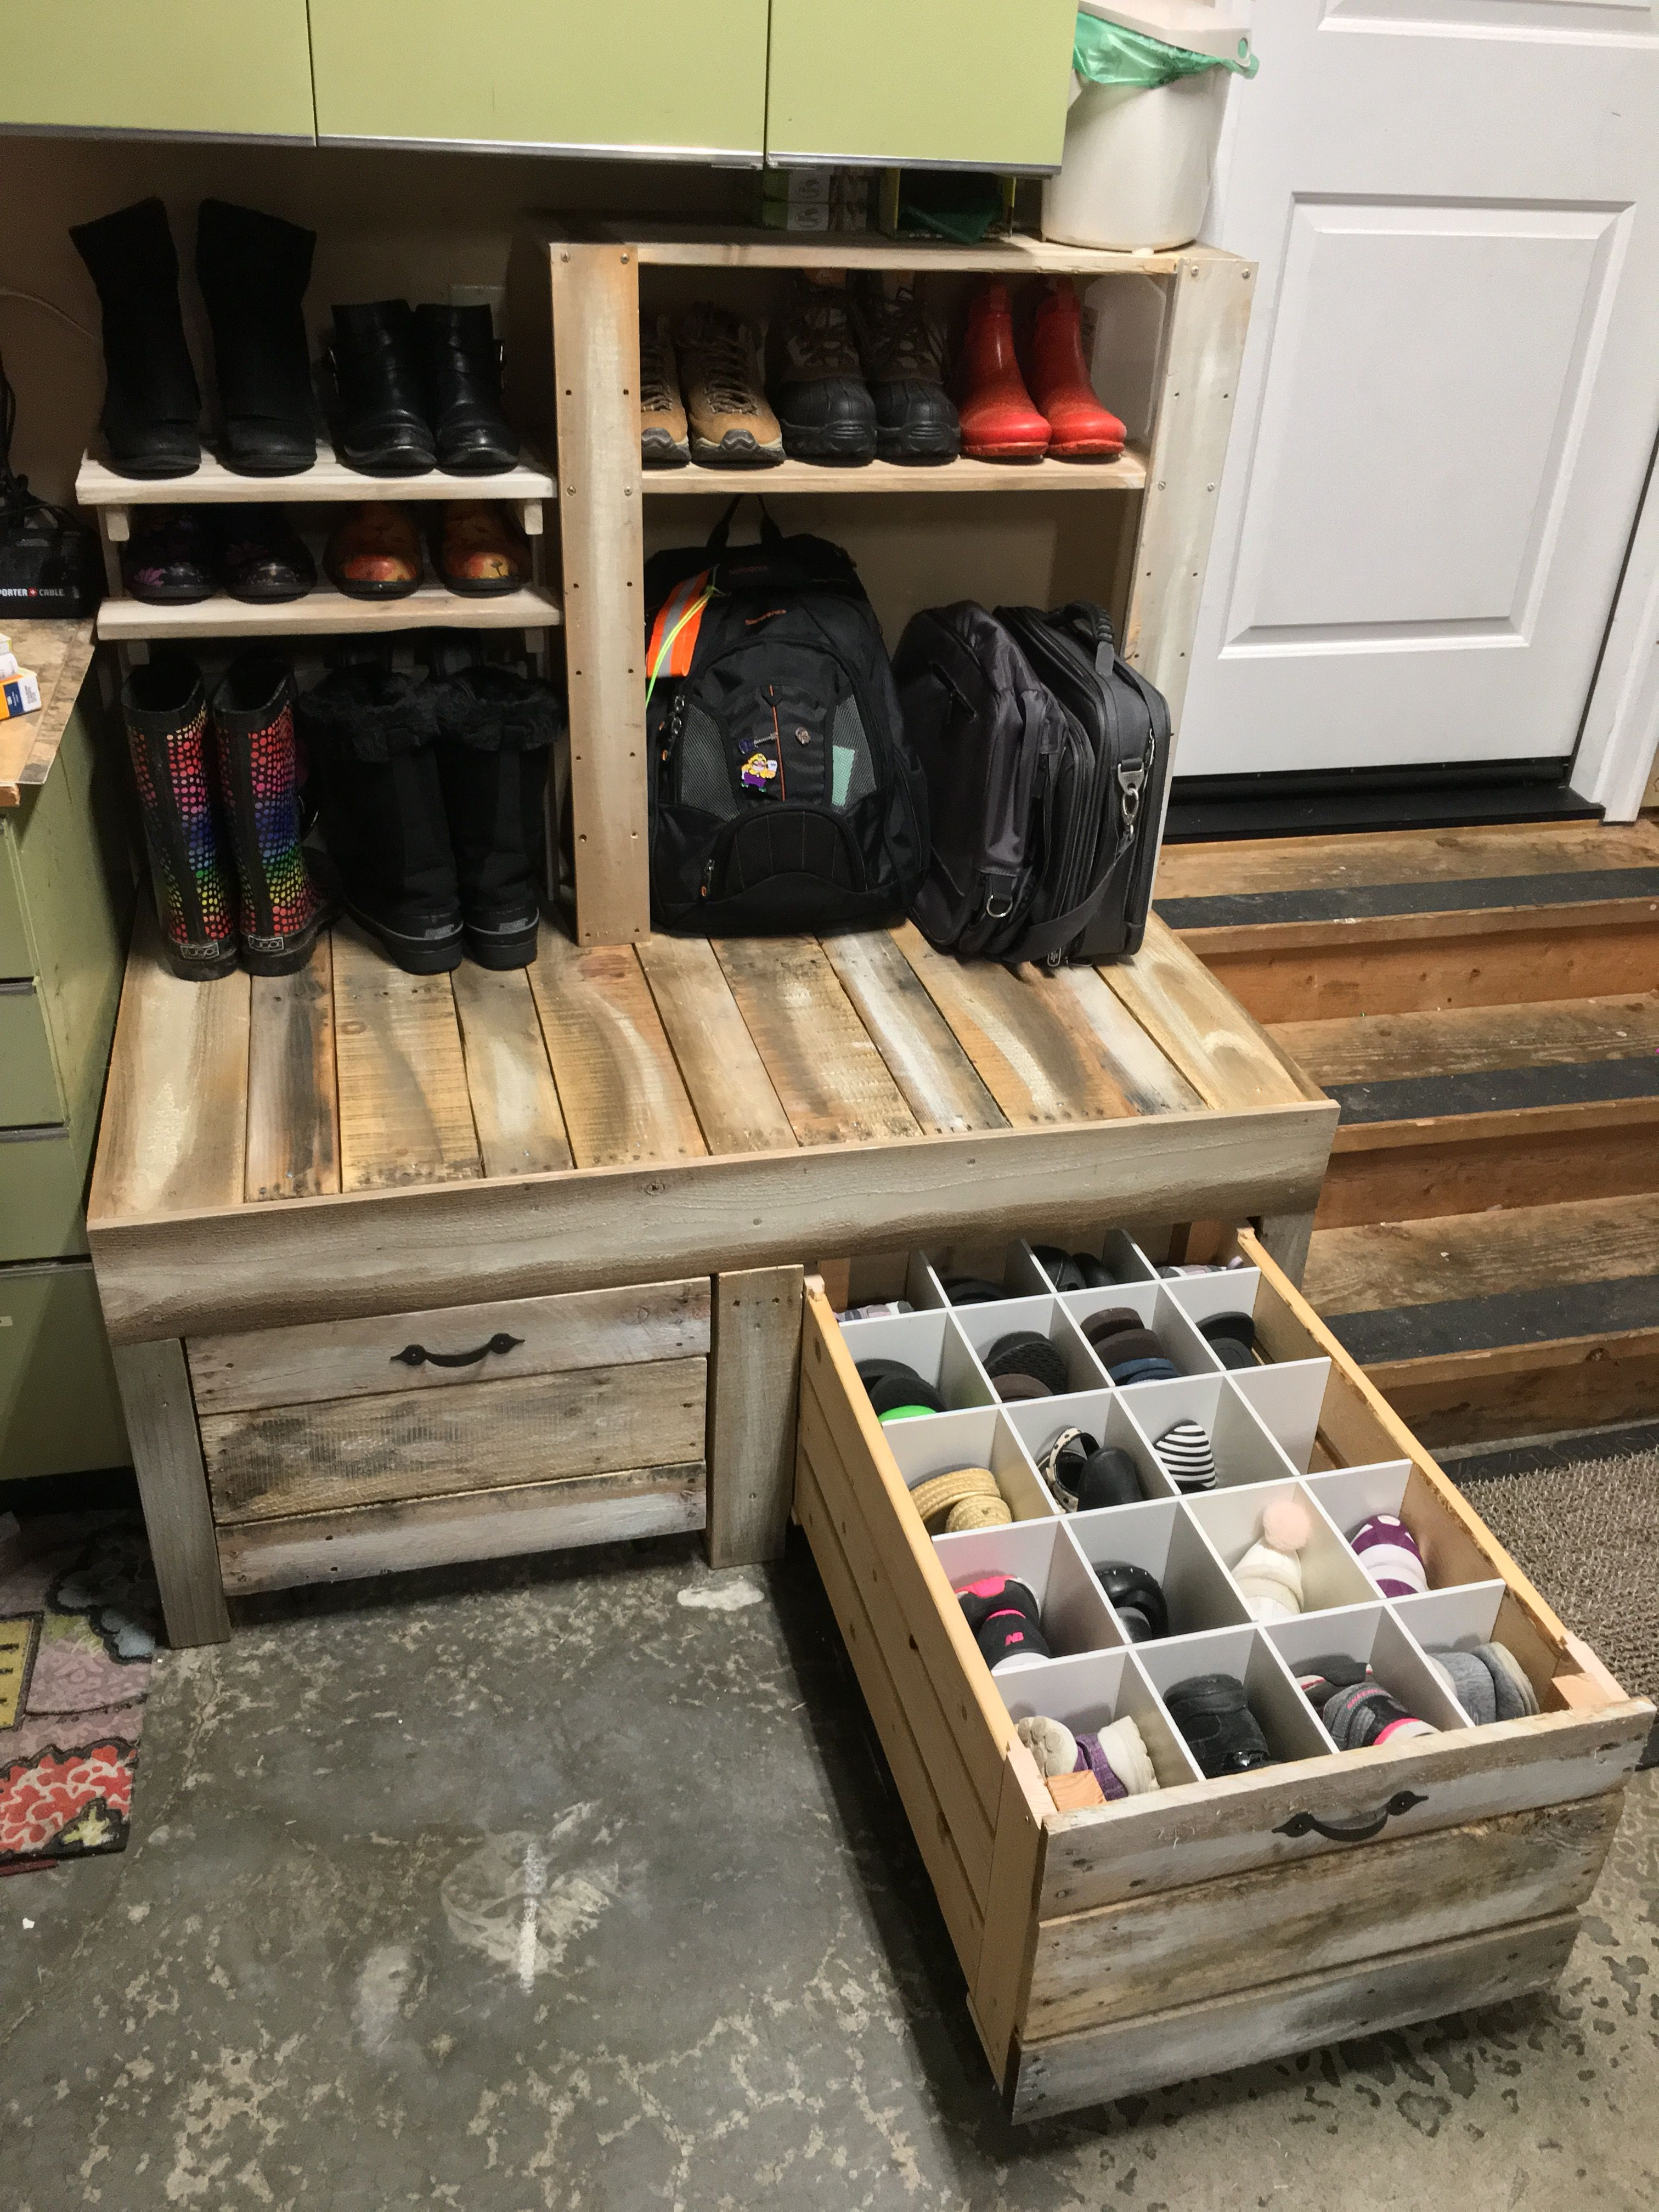 Wondrous Shoe Storage With Bench Drawers Hide Shoes And Keep Them Lamtechconsult Wood Chair Design Ideas Lamtechconsultcom